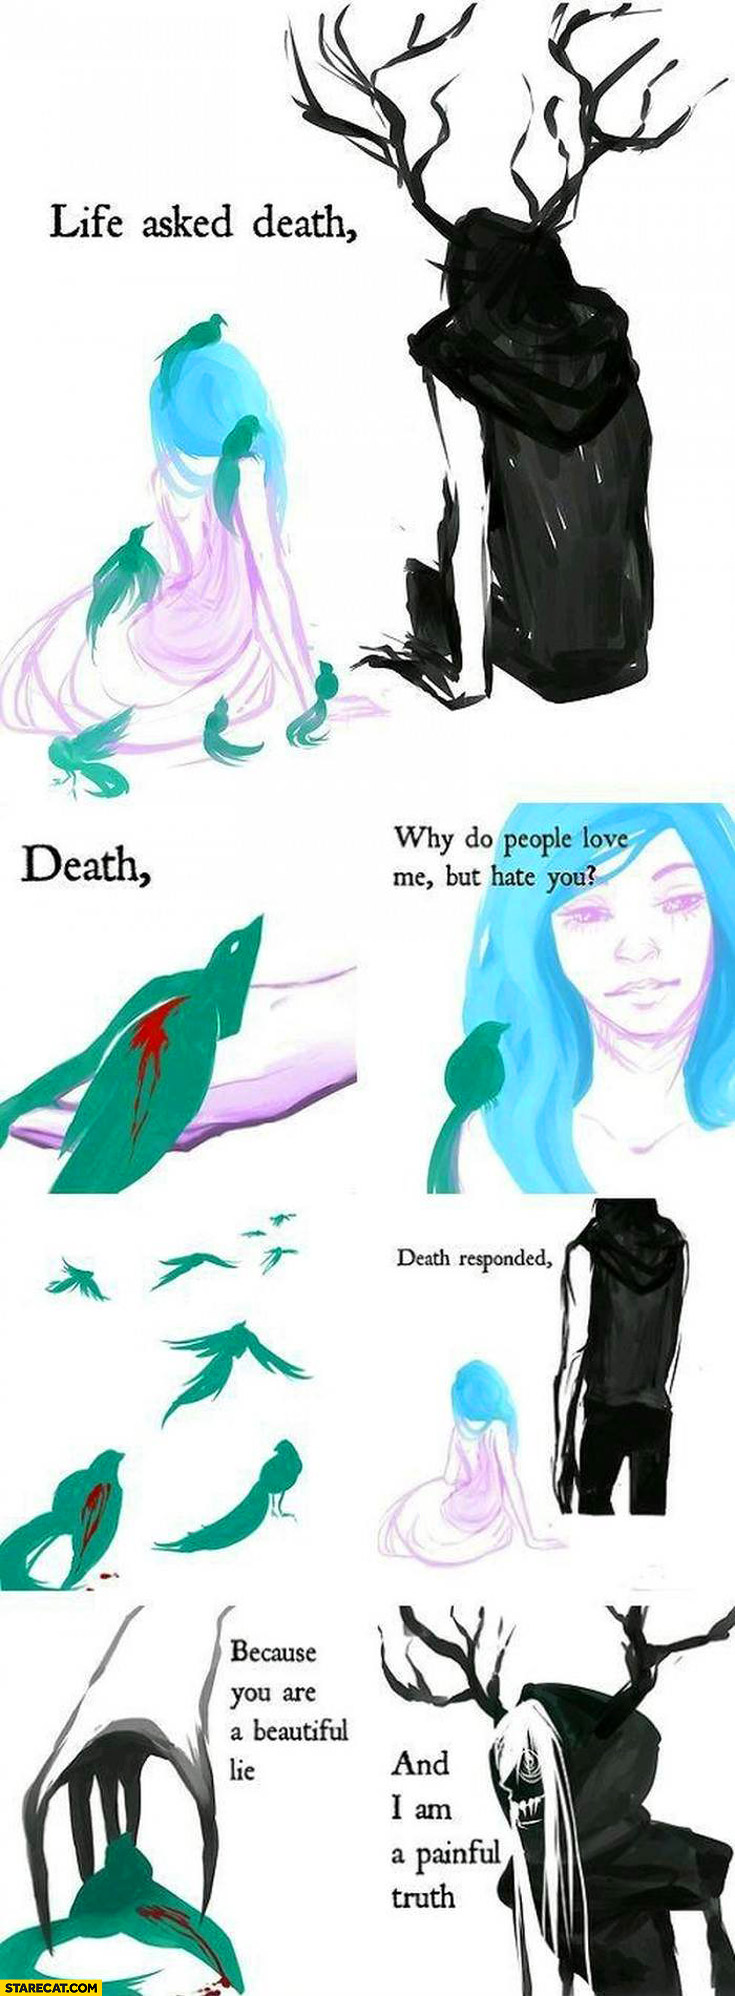 Life asked death why do people love me but hate you? Because you are beautiful lie and I am painful truth